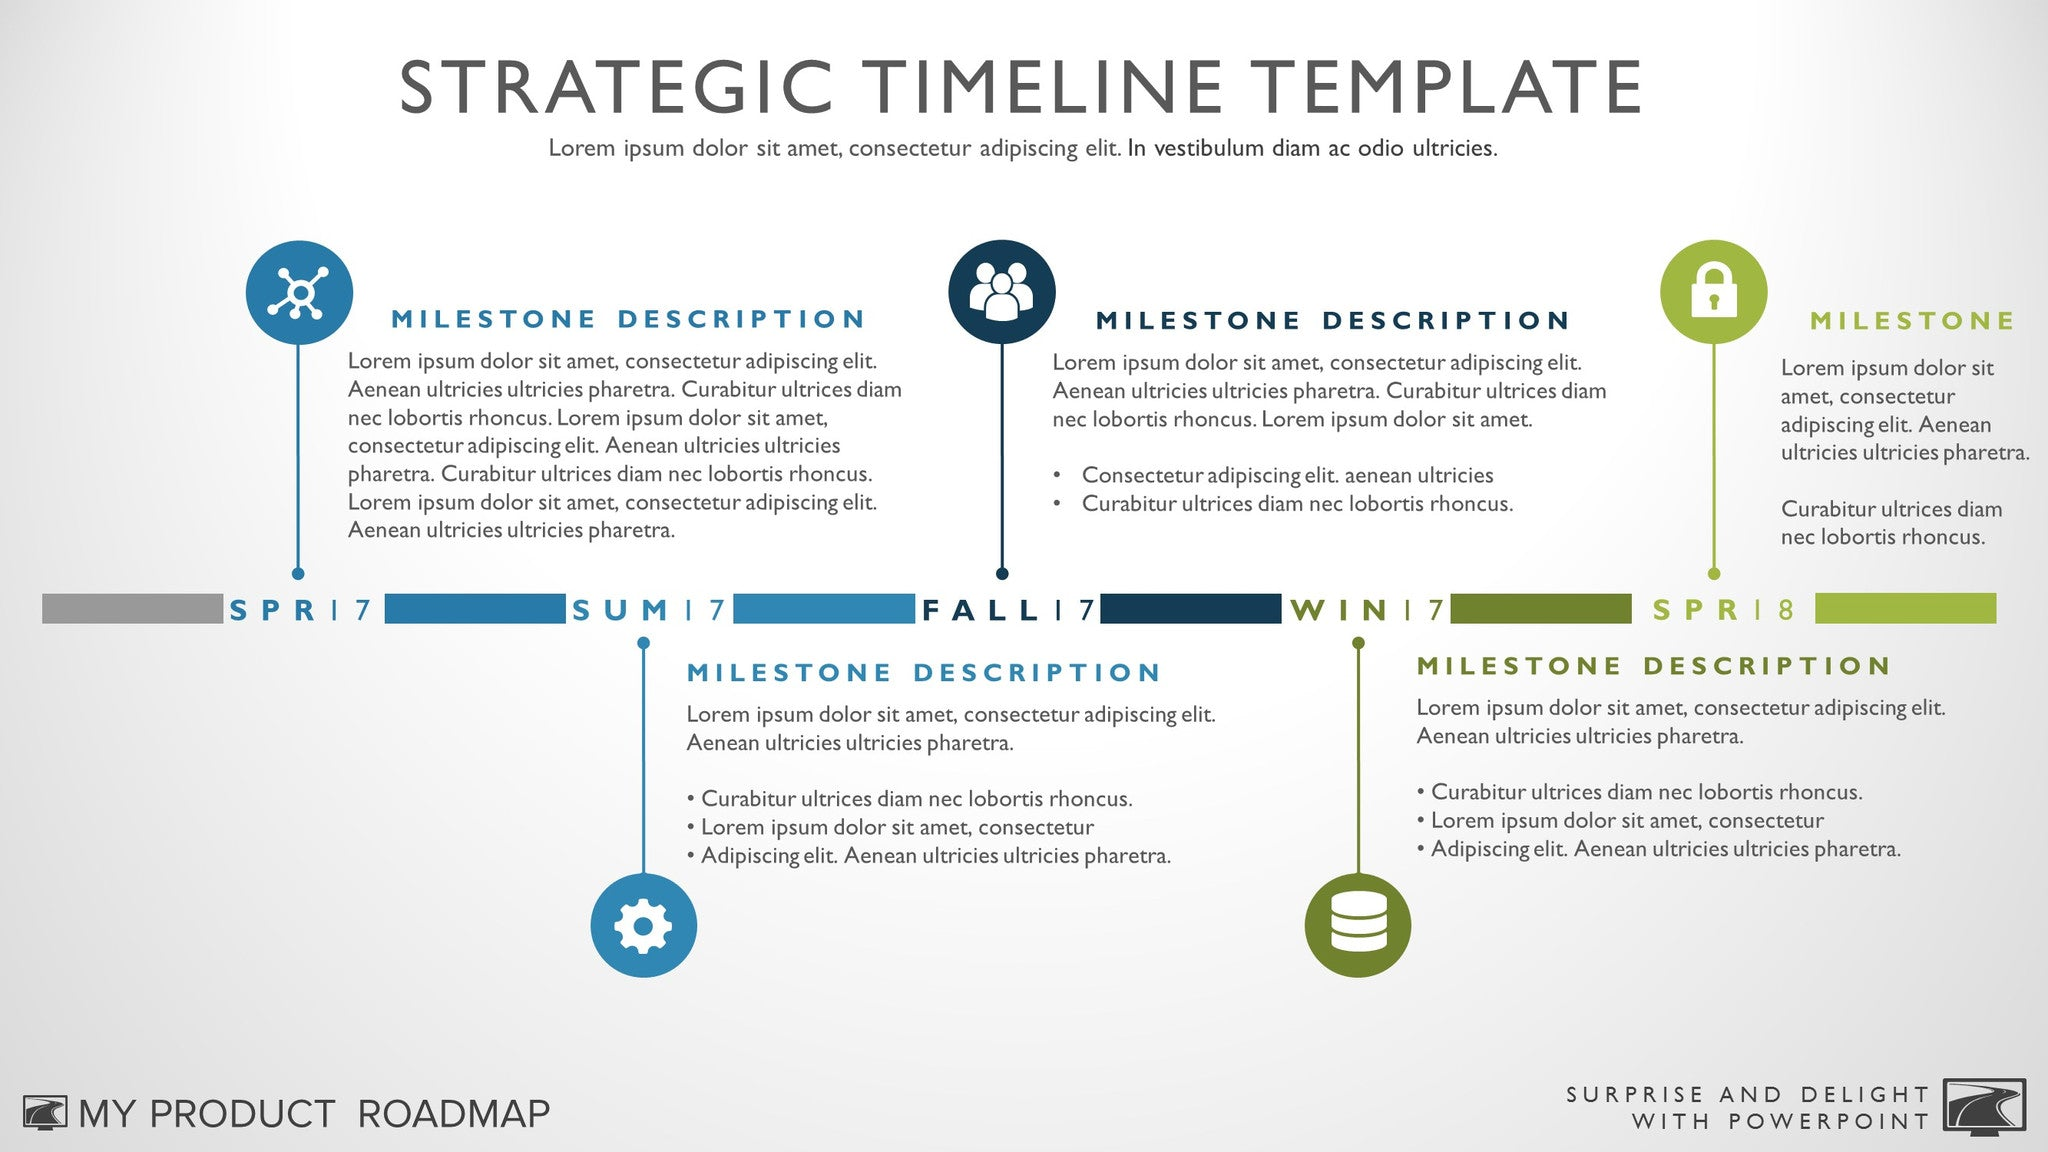 Five Phase Creative Timeline Template - Milestone timeline template